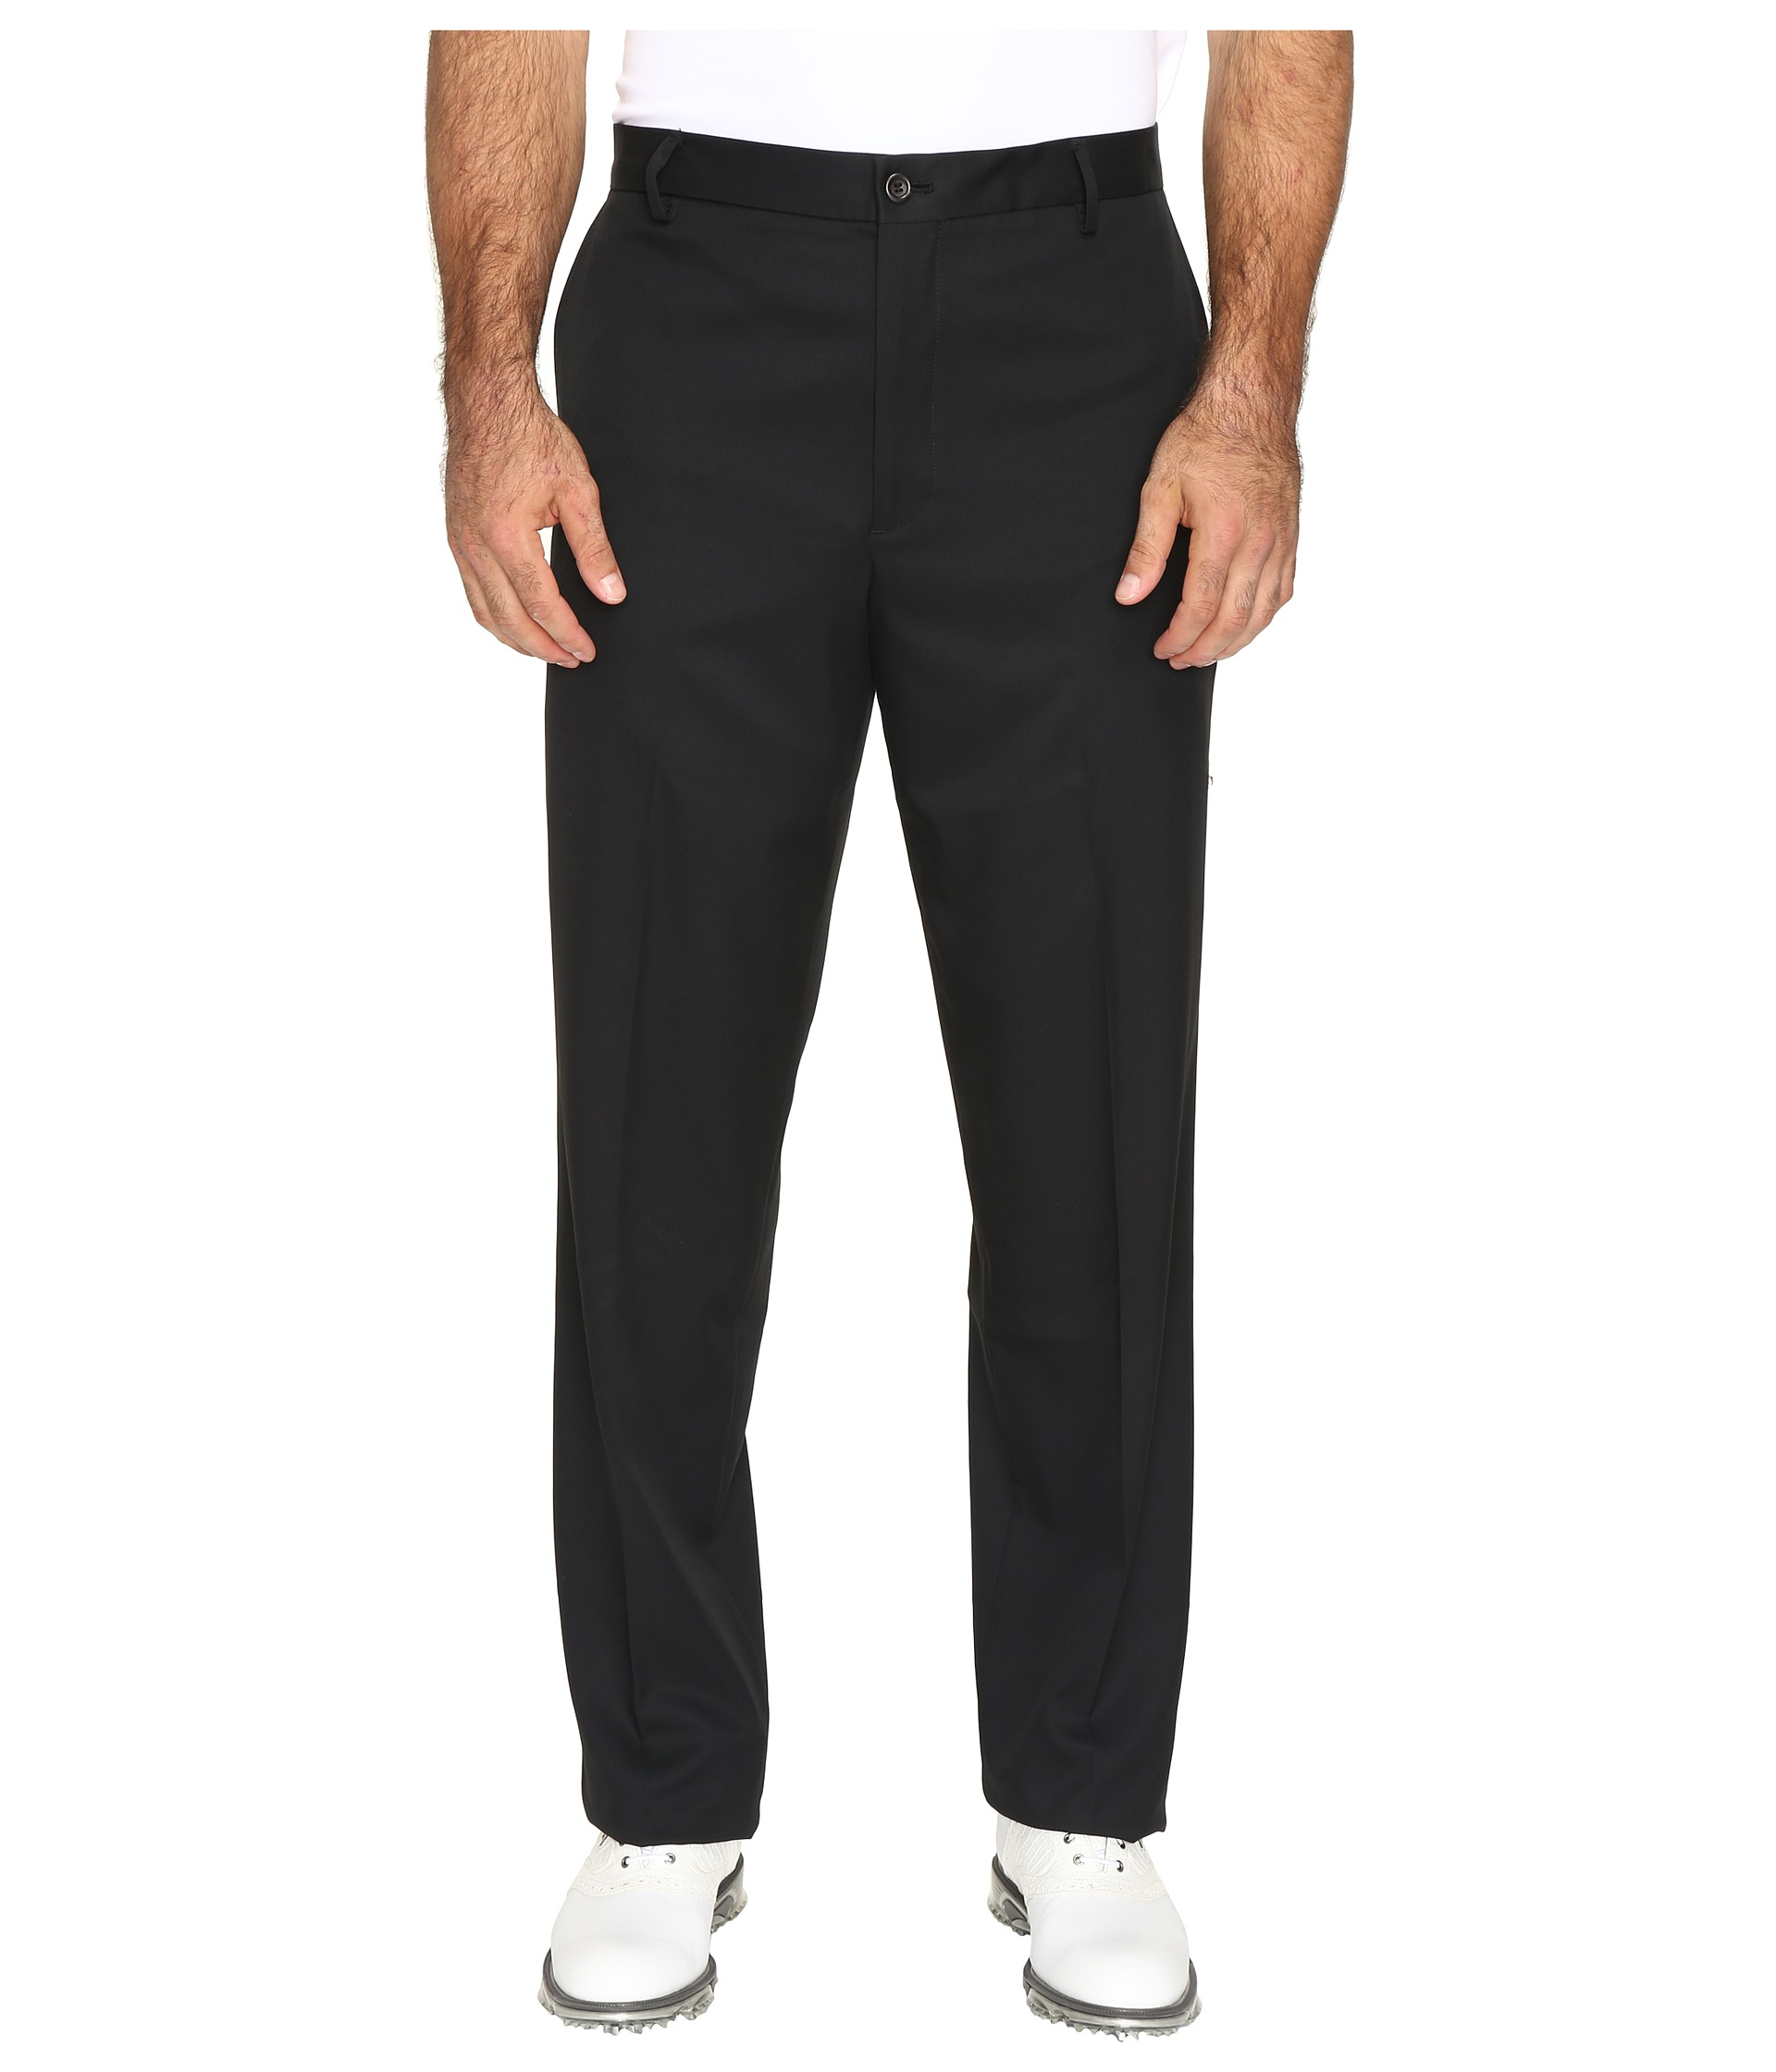 Big and Tall Dockers Pants clothes for Men at Macy's come in all styles & sizes. Shop Big and Tall Dockers Pants men's clothing at Macy's today. Free Shipping available.